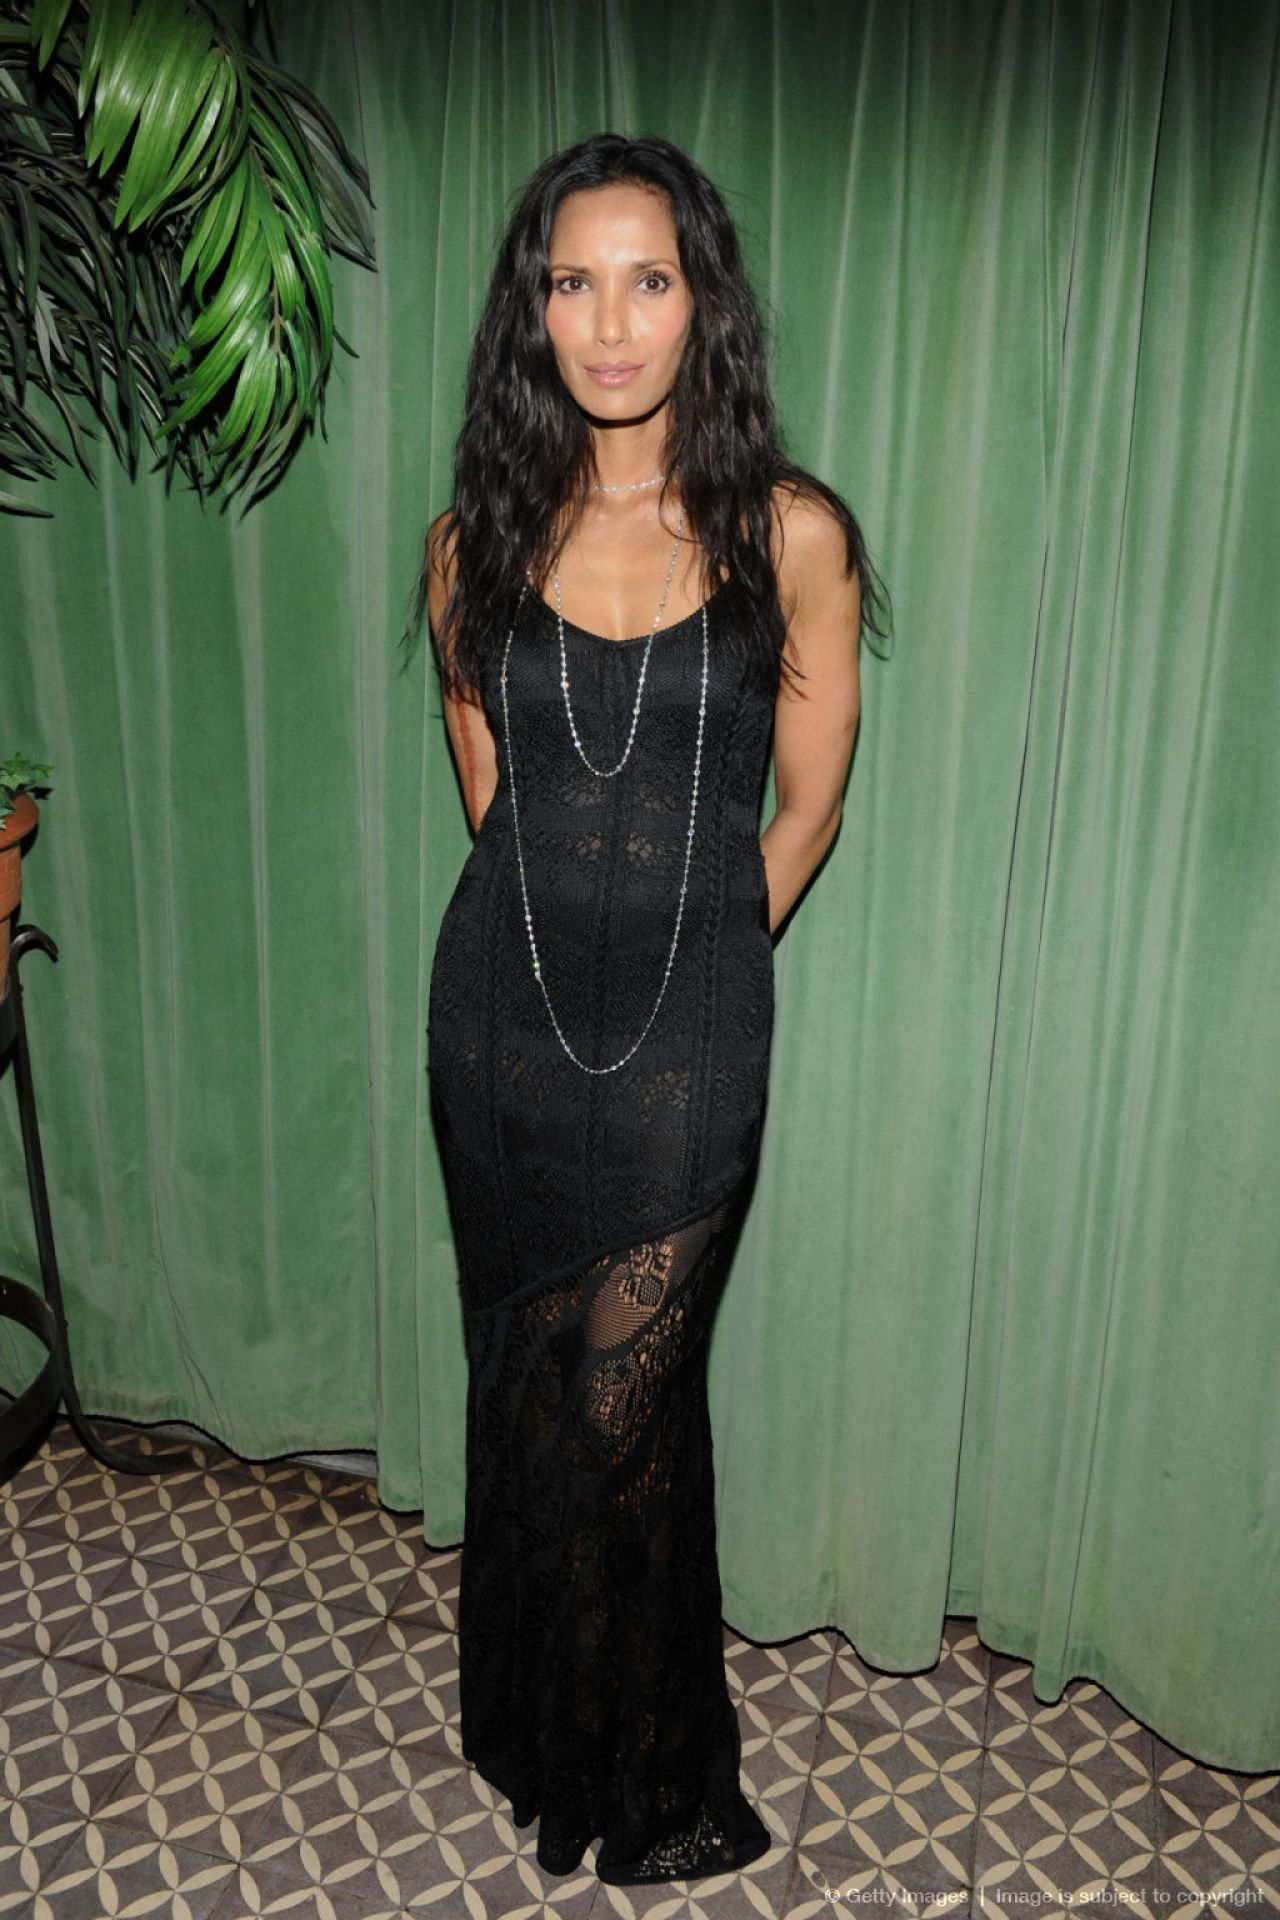 Padma Lakshmi at 2014 Turtle Ball in New York City